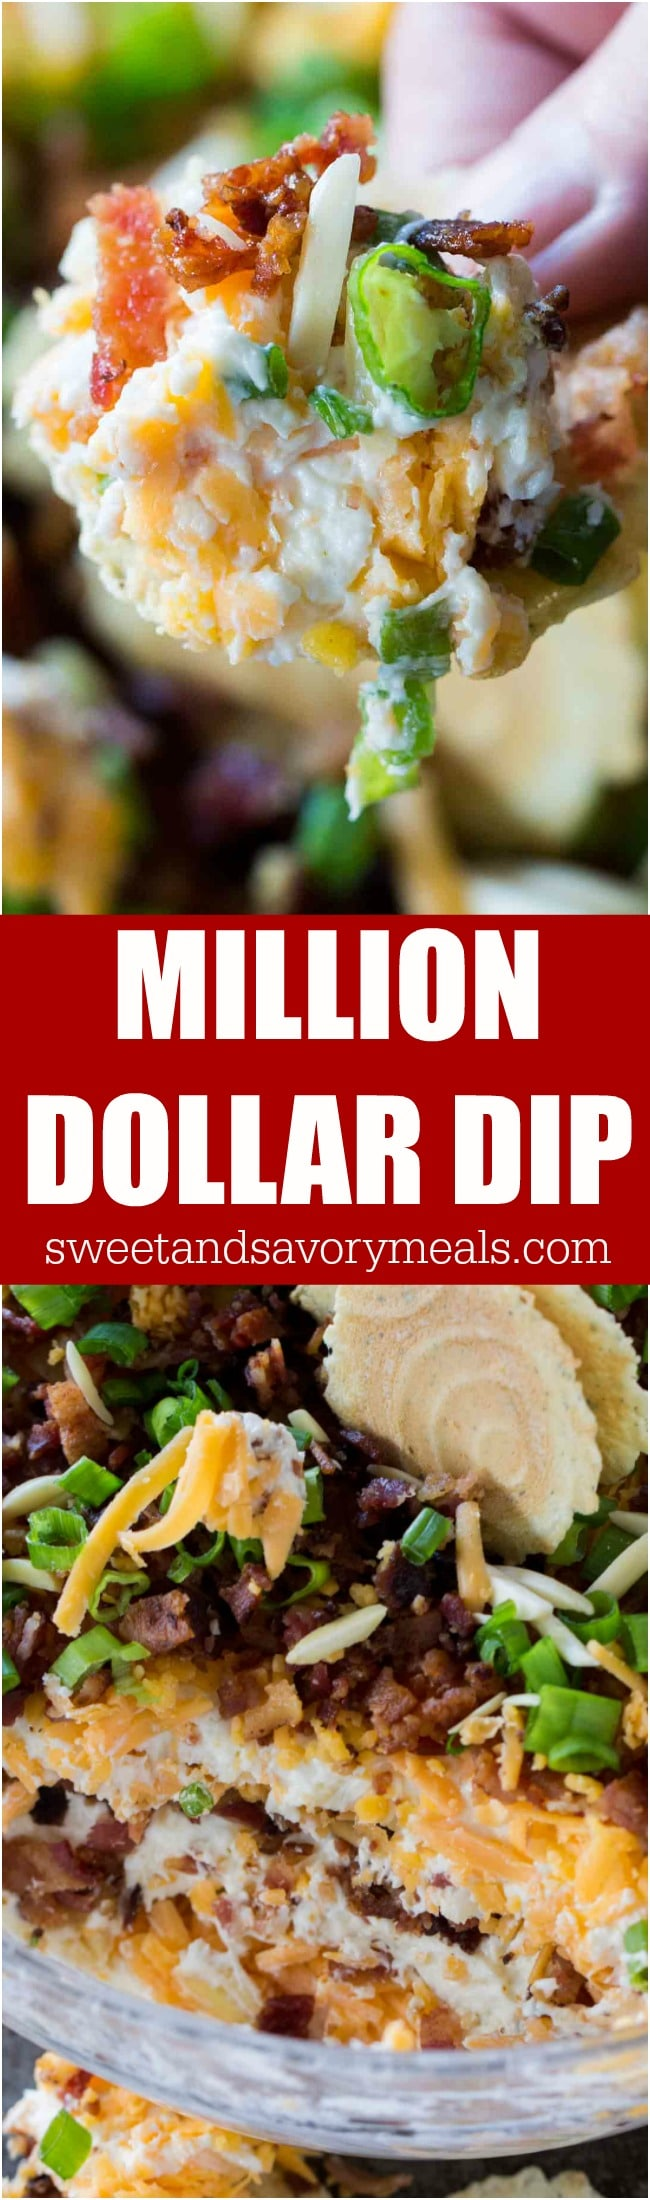 Million Dollar Dip is the best cheese dip that you can make! Layers of creamy cheese, sharp cheddar cheese, bacon, slivered almonds and green onions!